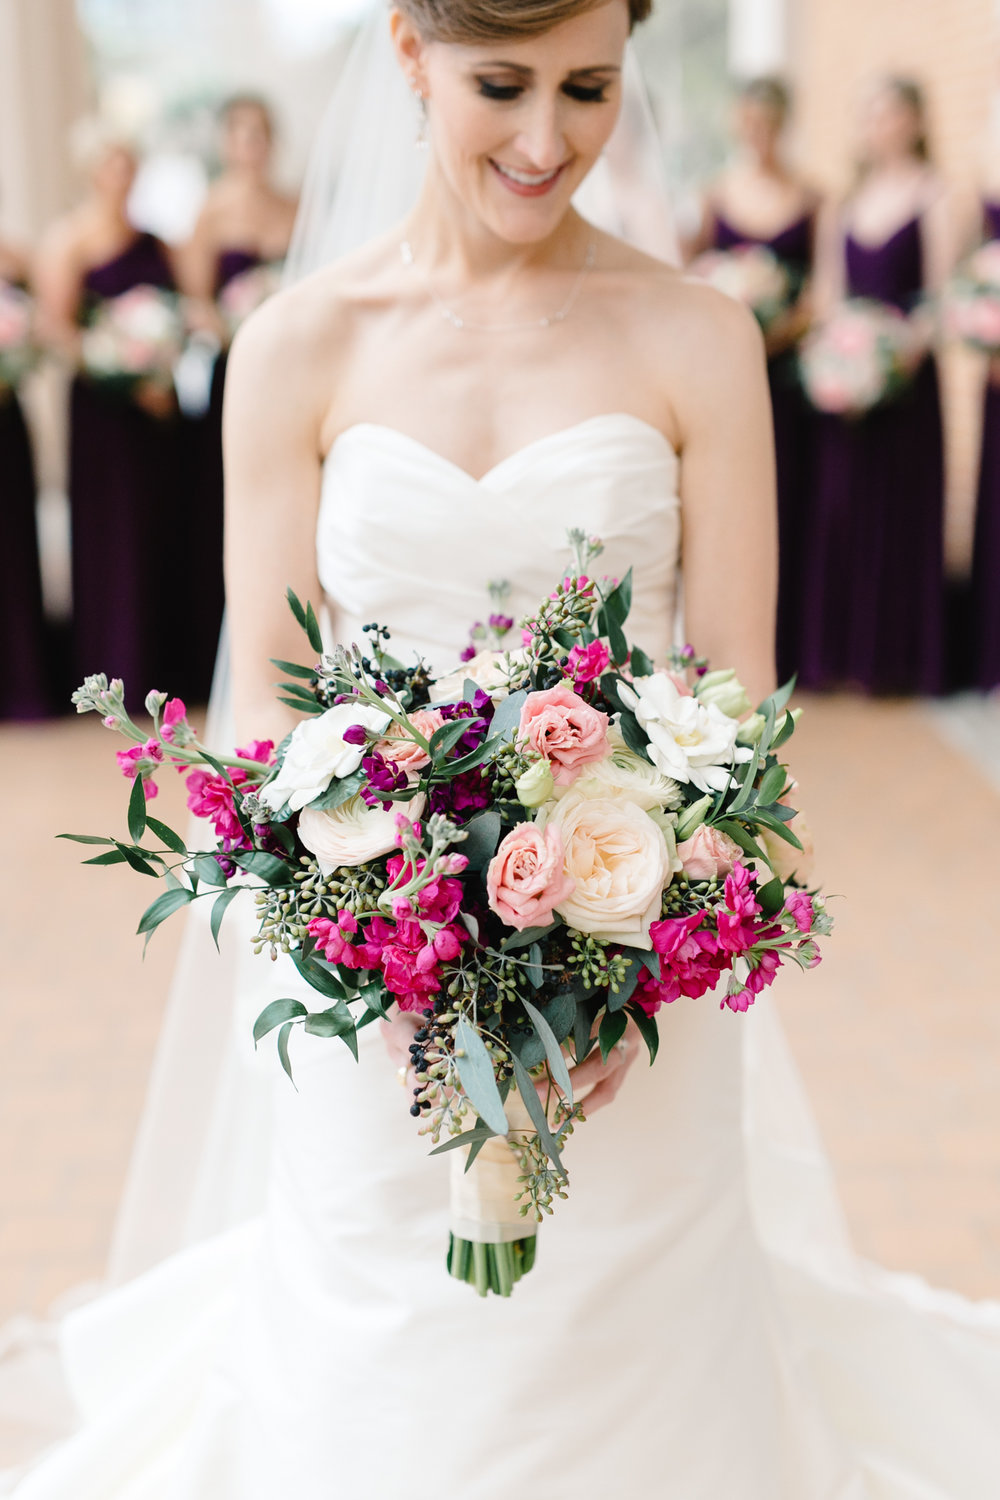 Bridal bouquet with blush peonies, bright pink larkspur, and greenery